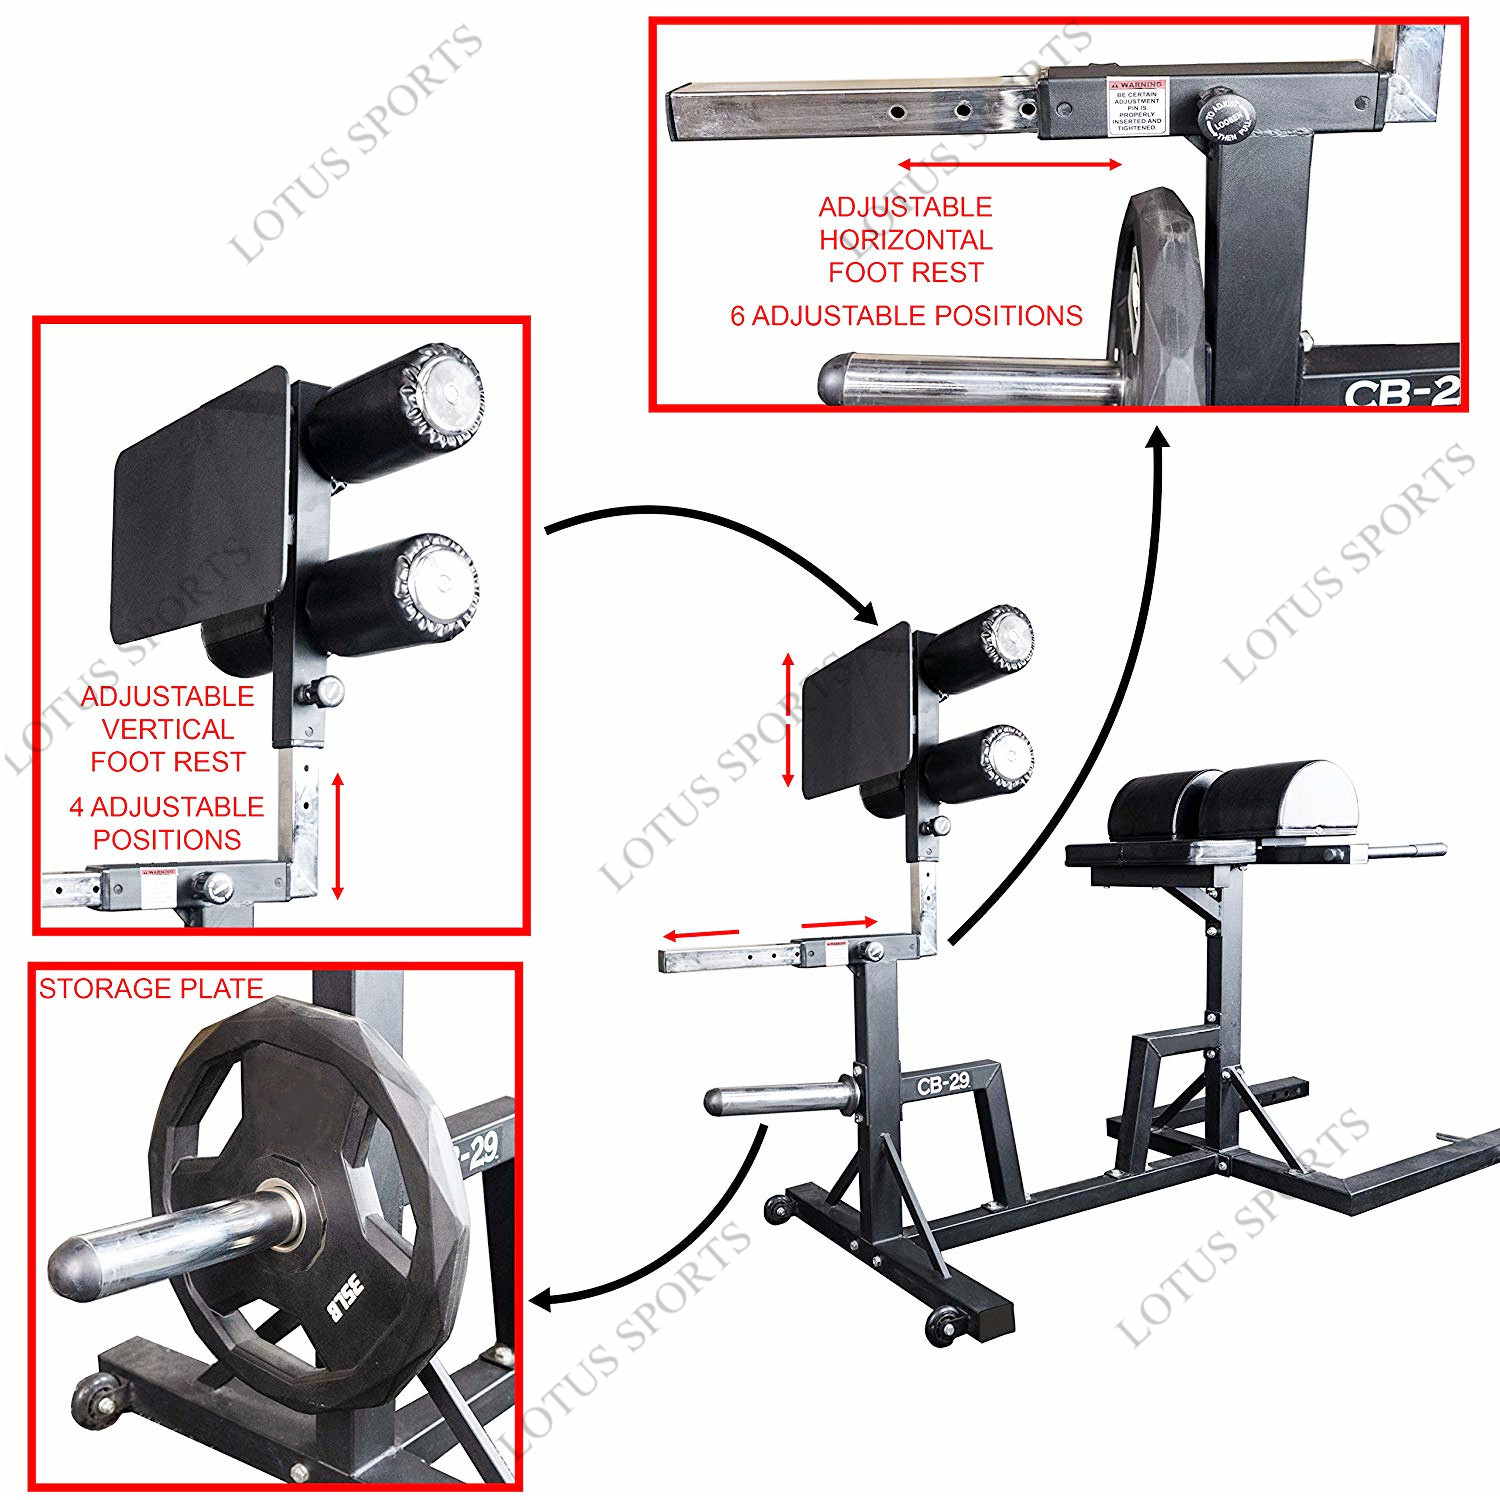 High quality commercial cross fit gym fitness equipment glute ham developer machine GHD